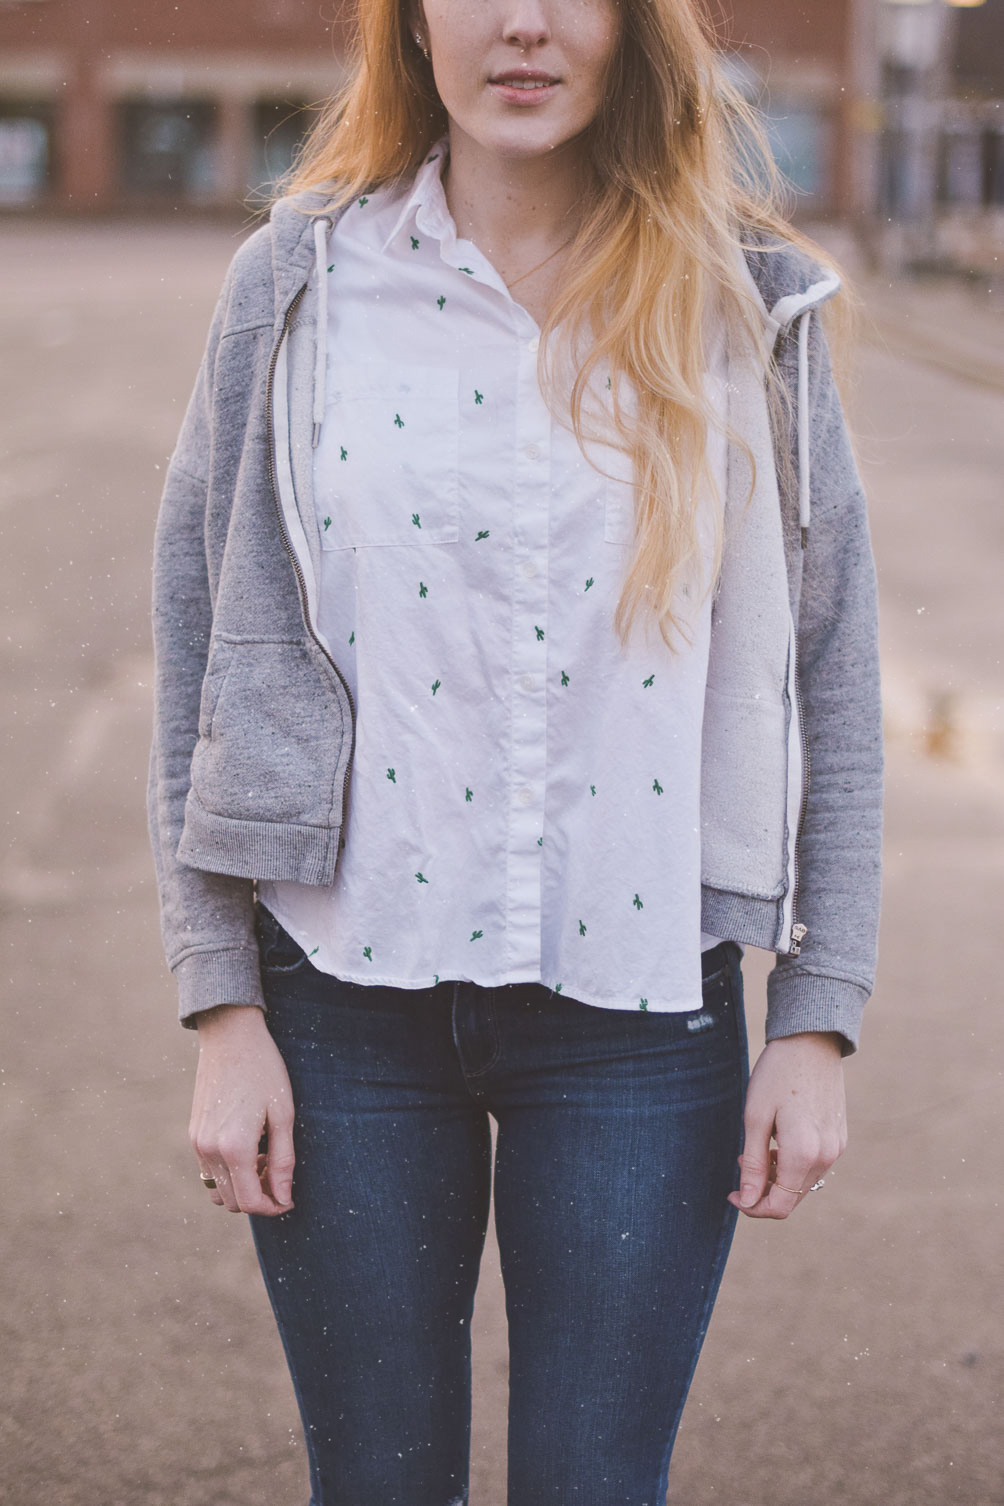 sharing my spring travel style with a gray hoodie, embroidered shirt, destroyed jeans and blush suede mules